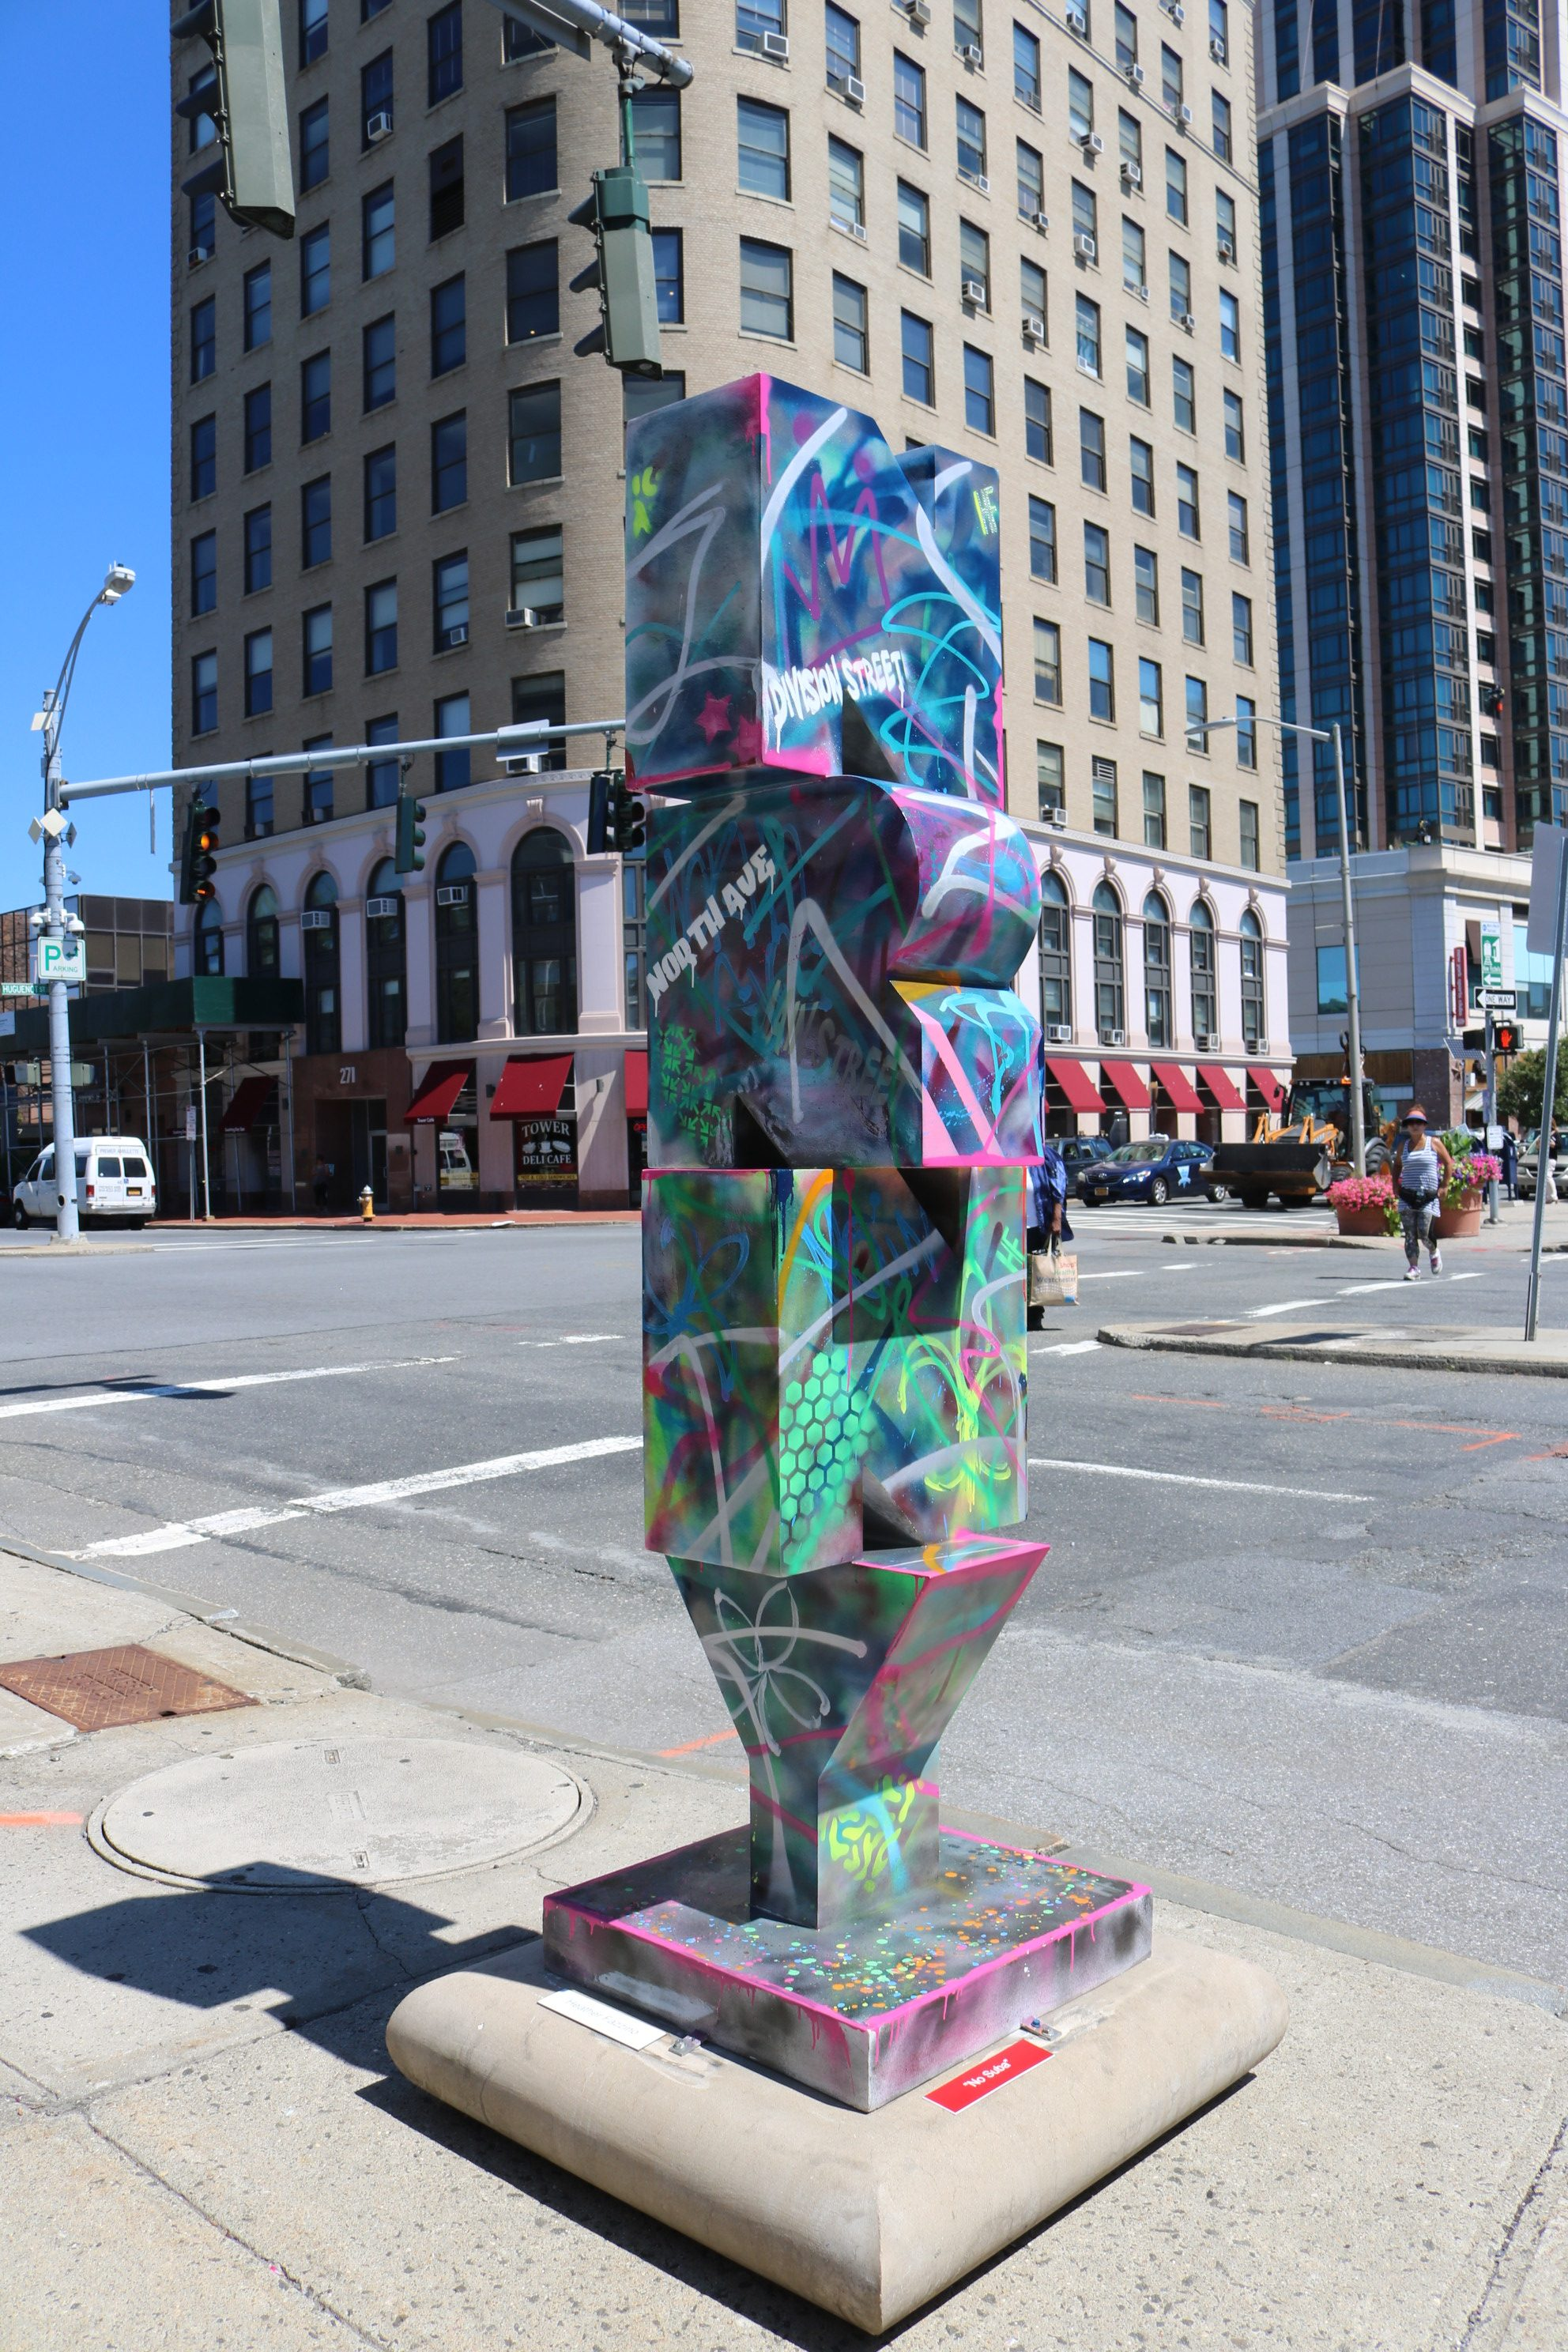 Heather Fazzino's NRNY sculpture located in New Rochelle